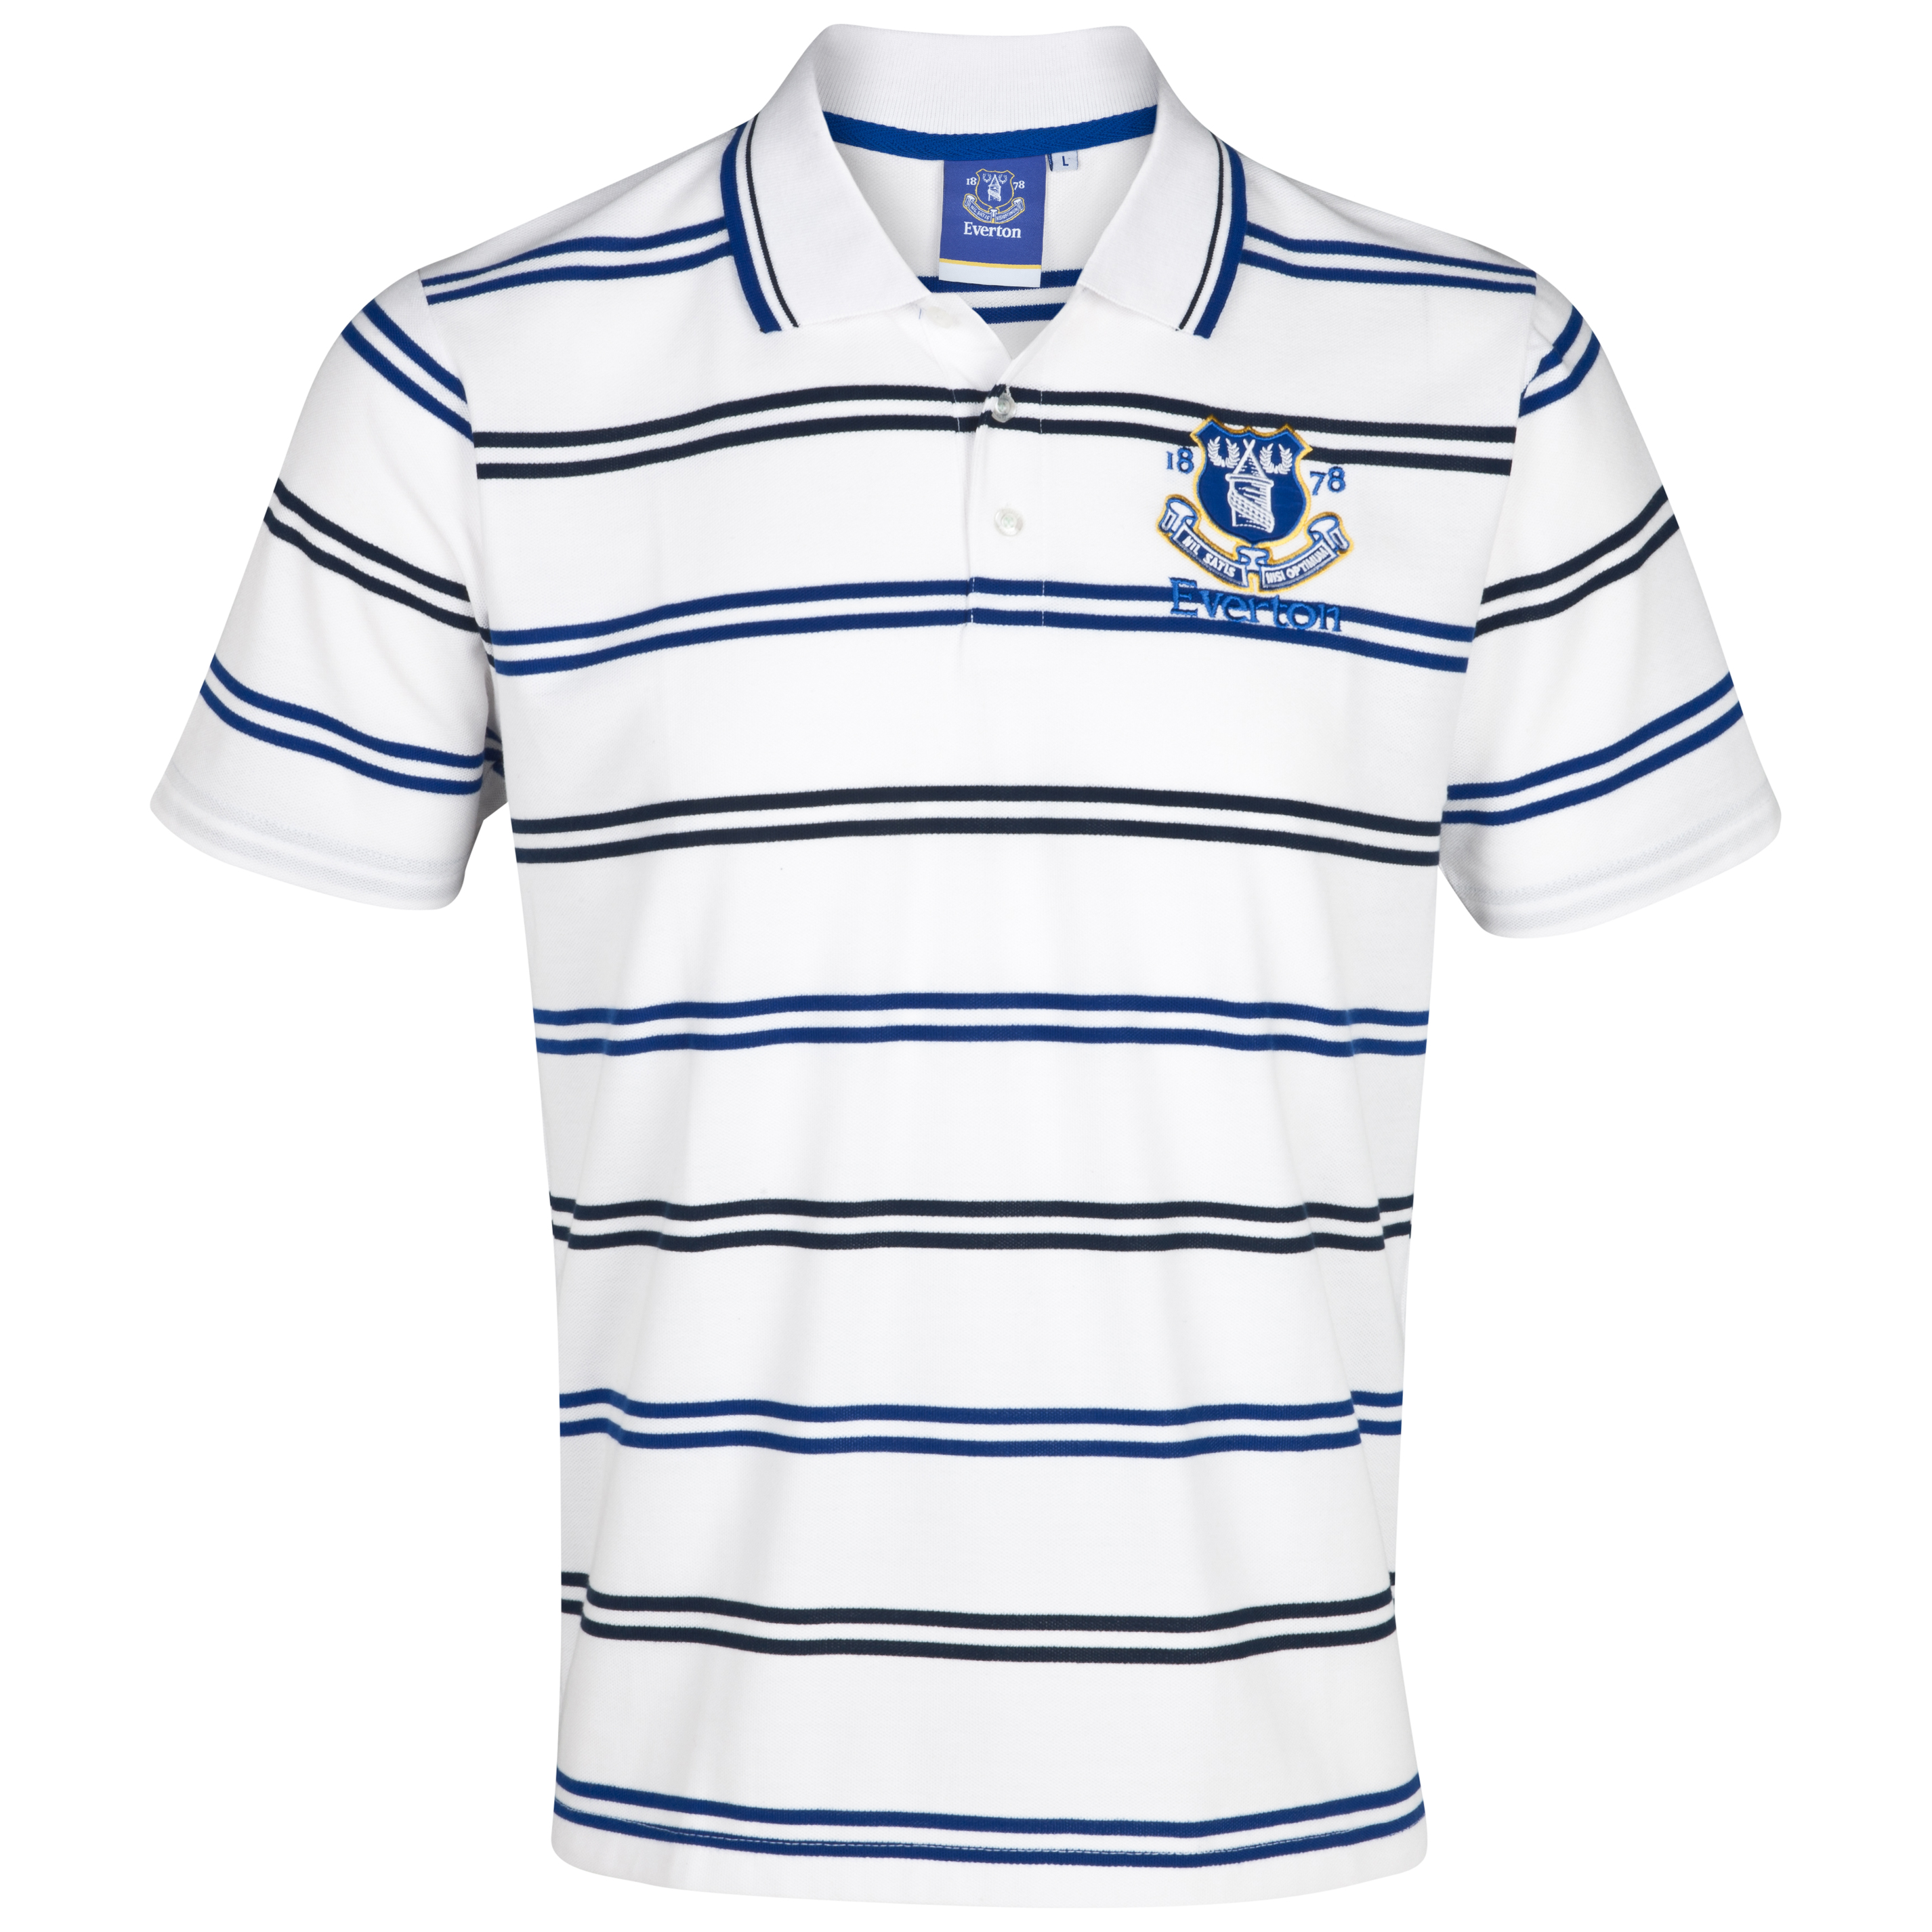 Everton Essentials Lineup Polo Top - White/Royal/Navy - Older Boys